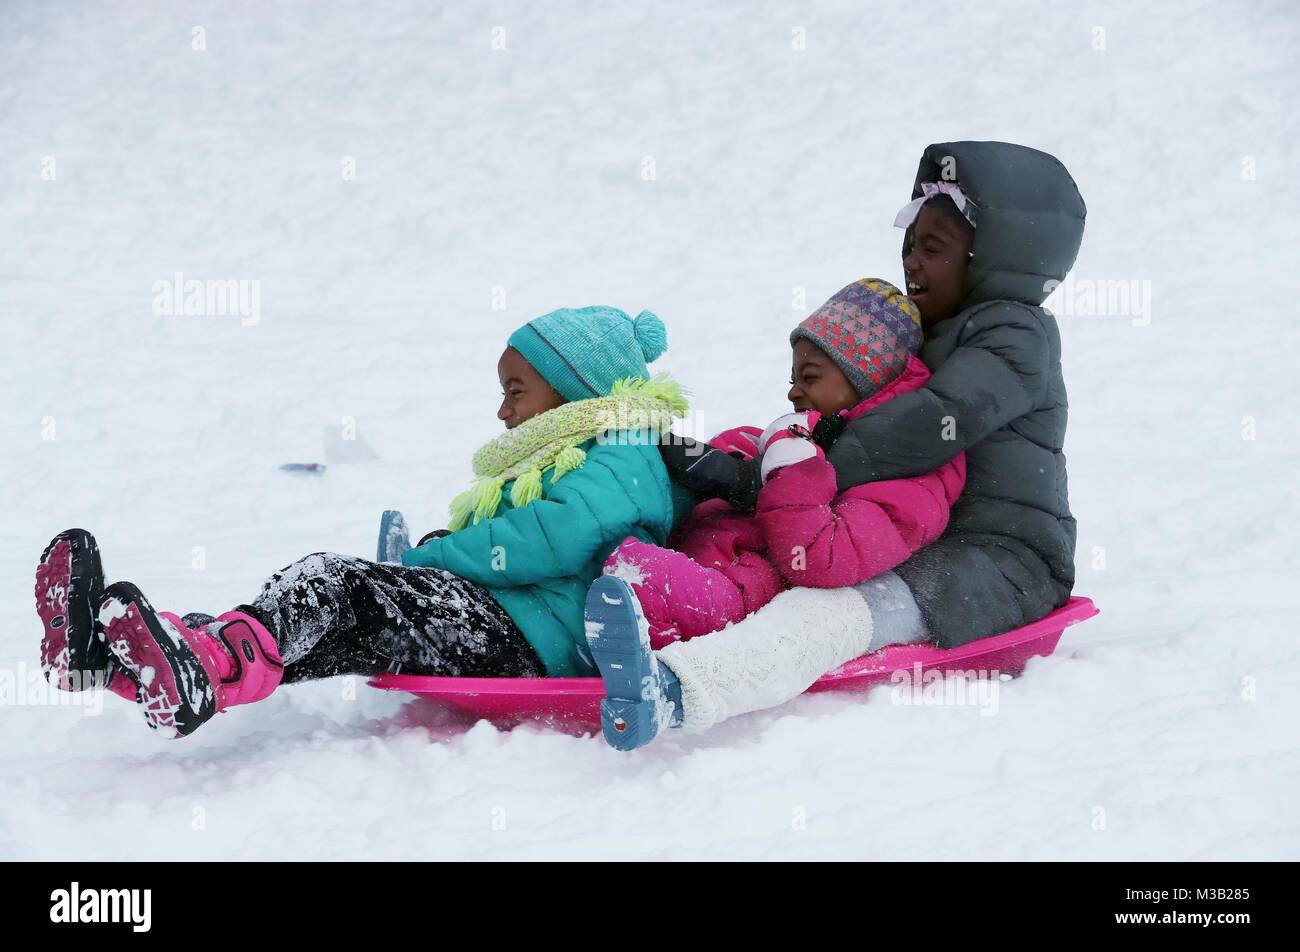 Chicago, USA. 9th Feb, 2018. People enjoy snow at Grant Park in Chicago, the United States, on Feb. 9, 2018. Credit: Stock Photo